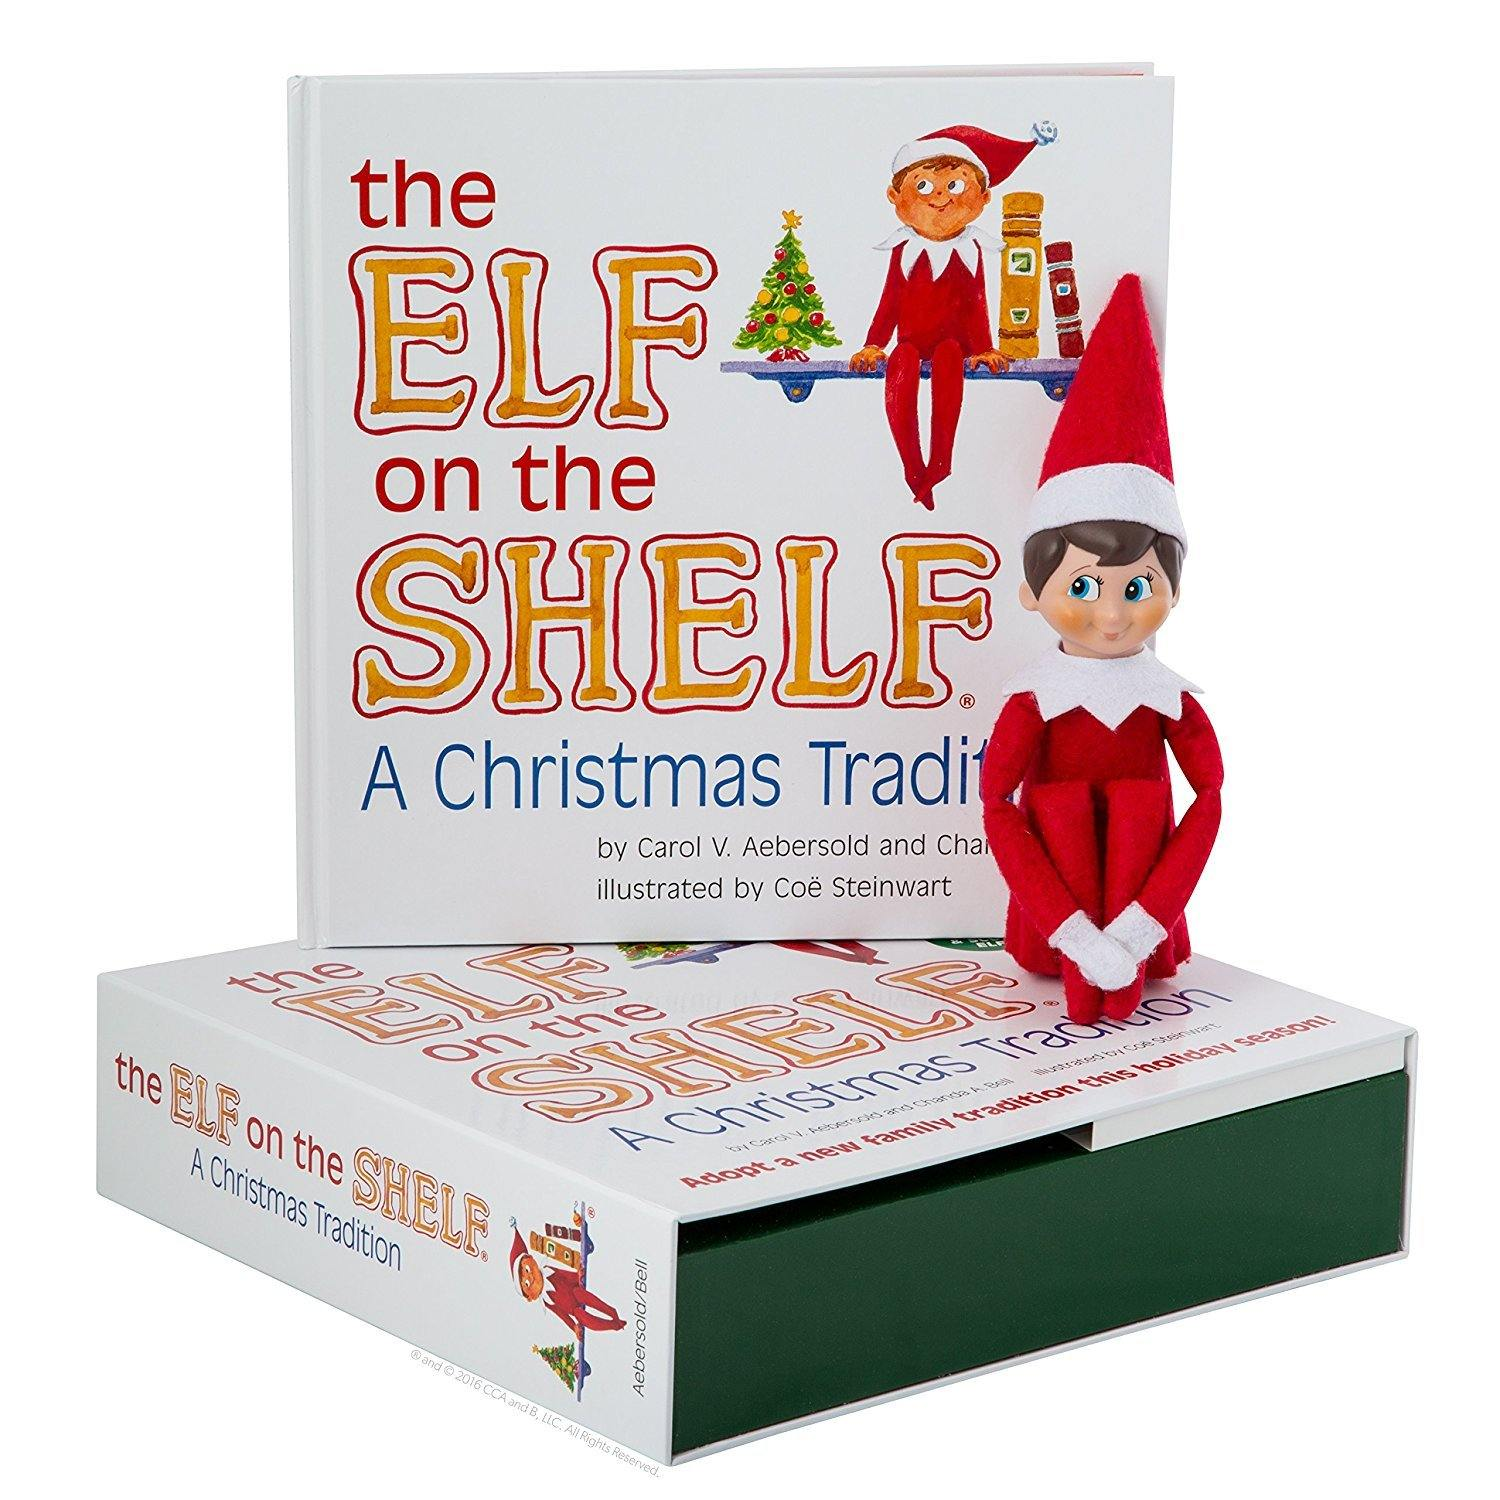 The Elf on the Shelf®: A Christmas Tradition - Boy